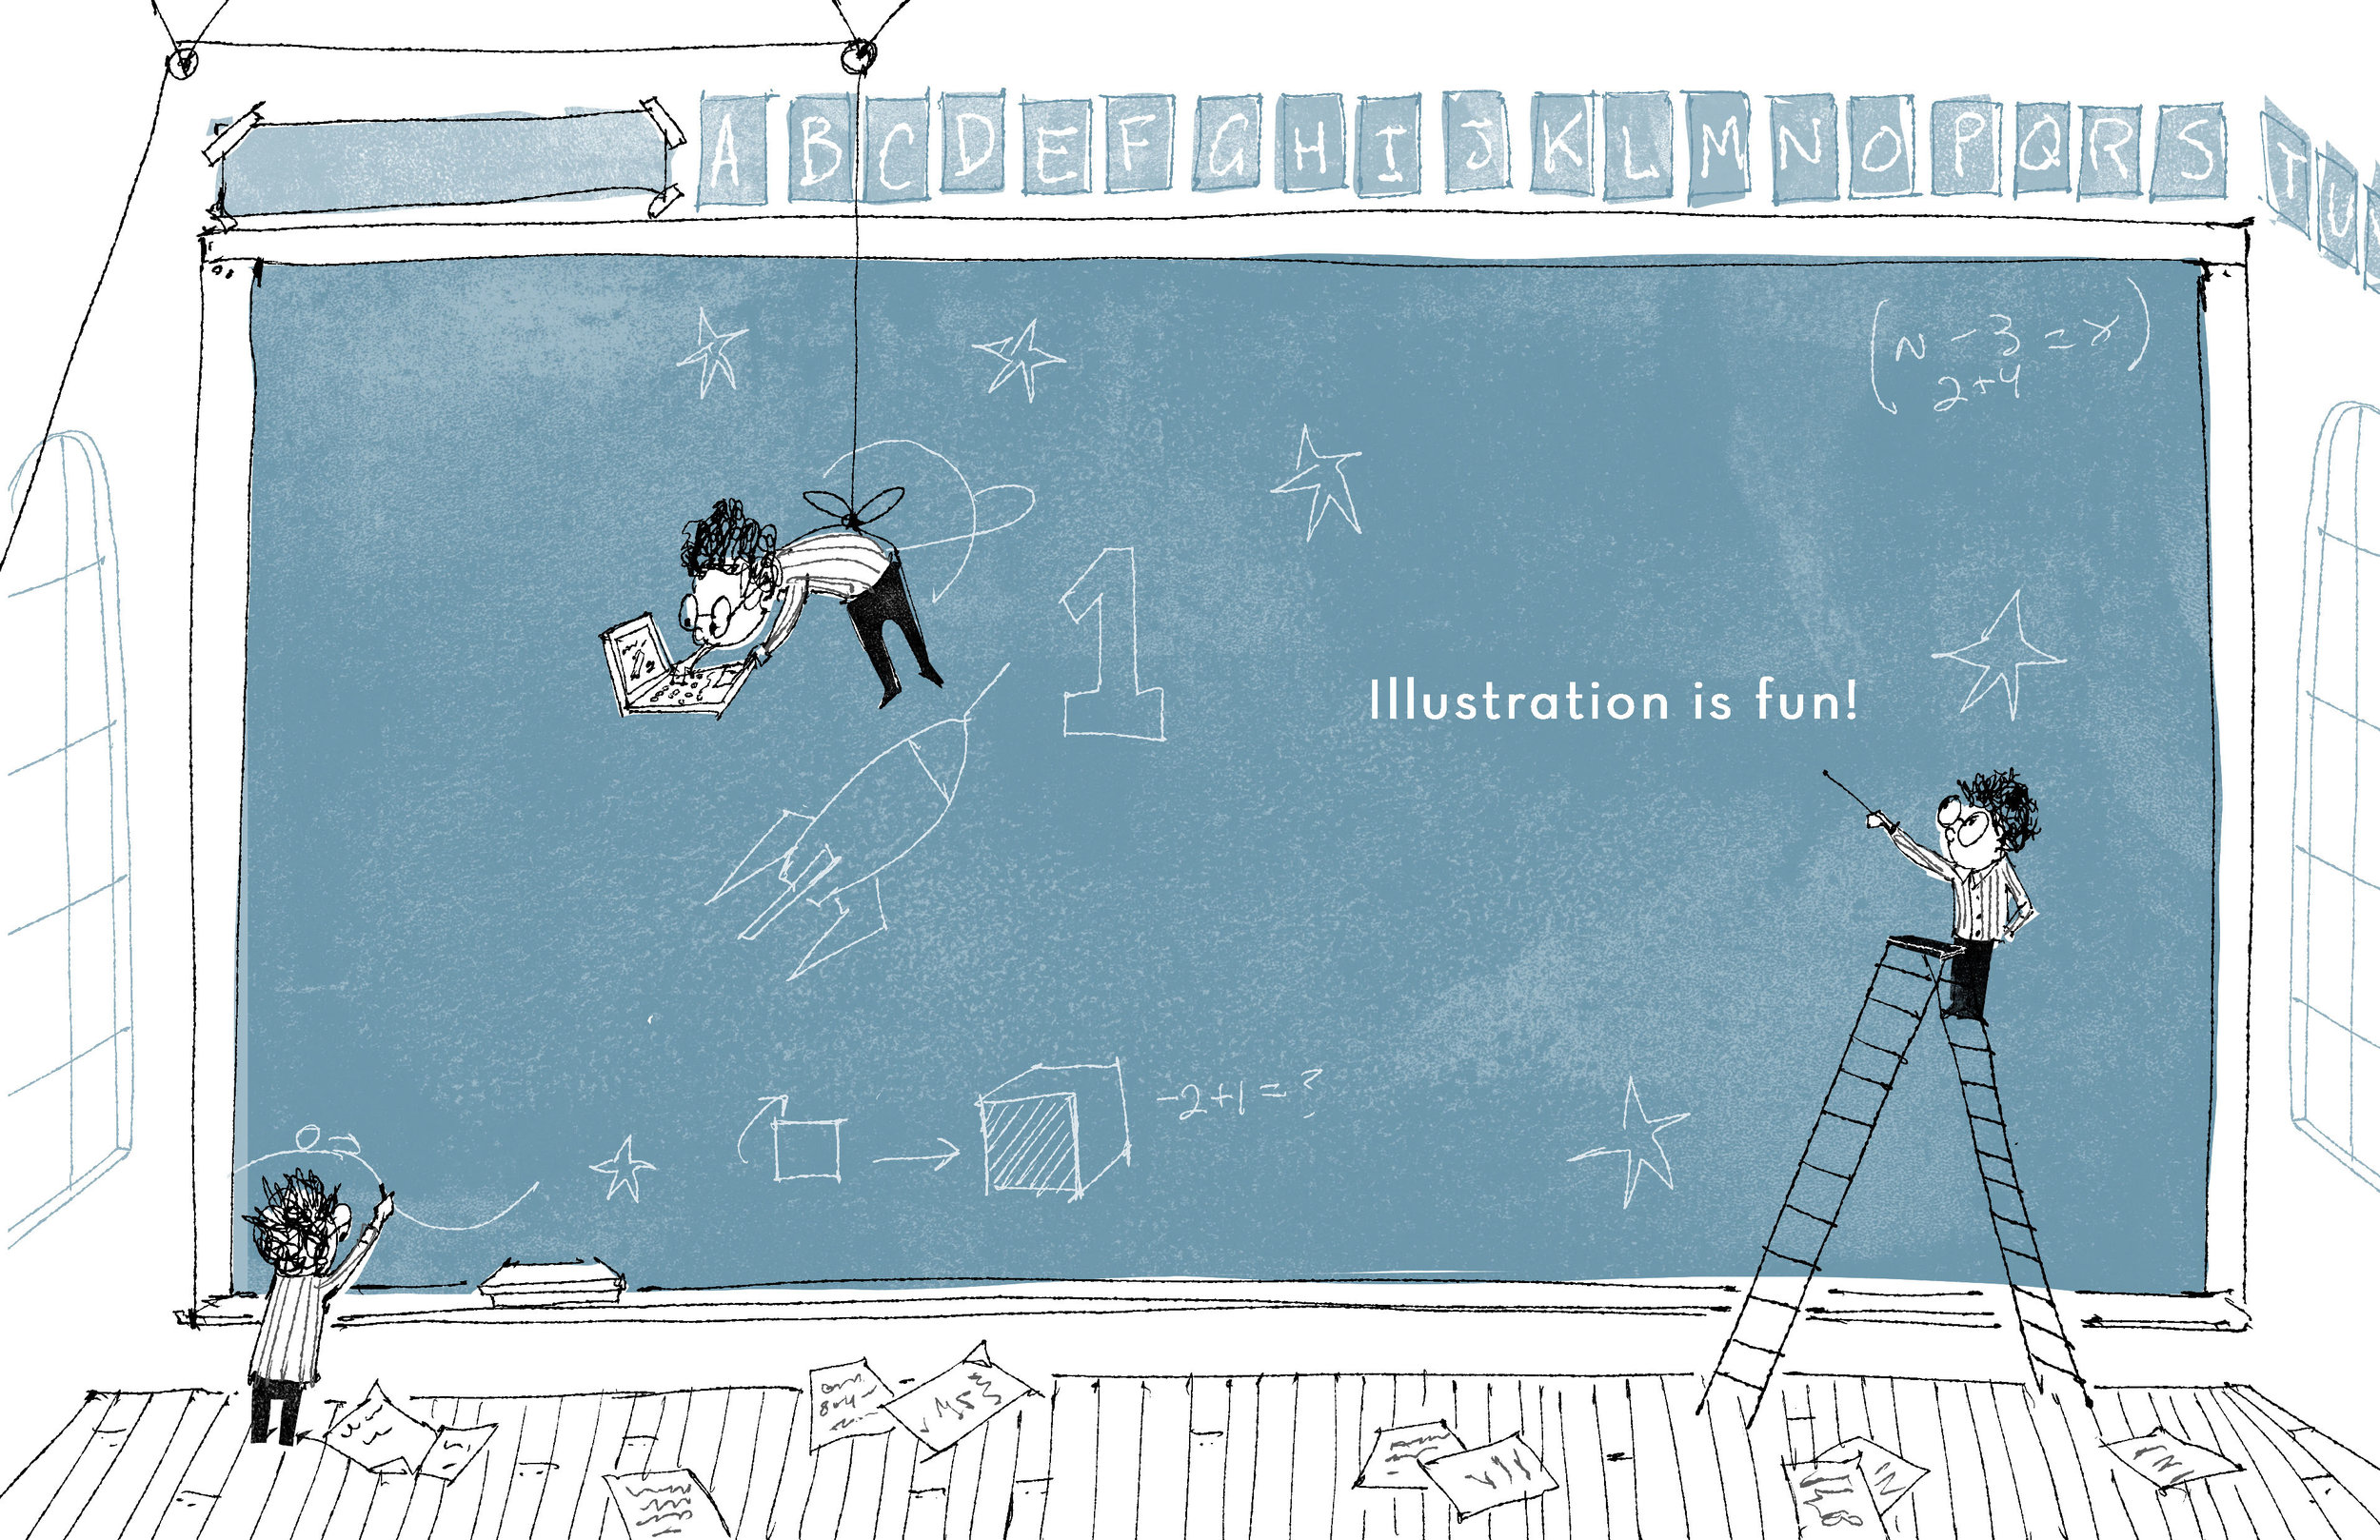 L is for Learning! Art by Lee White.